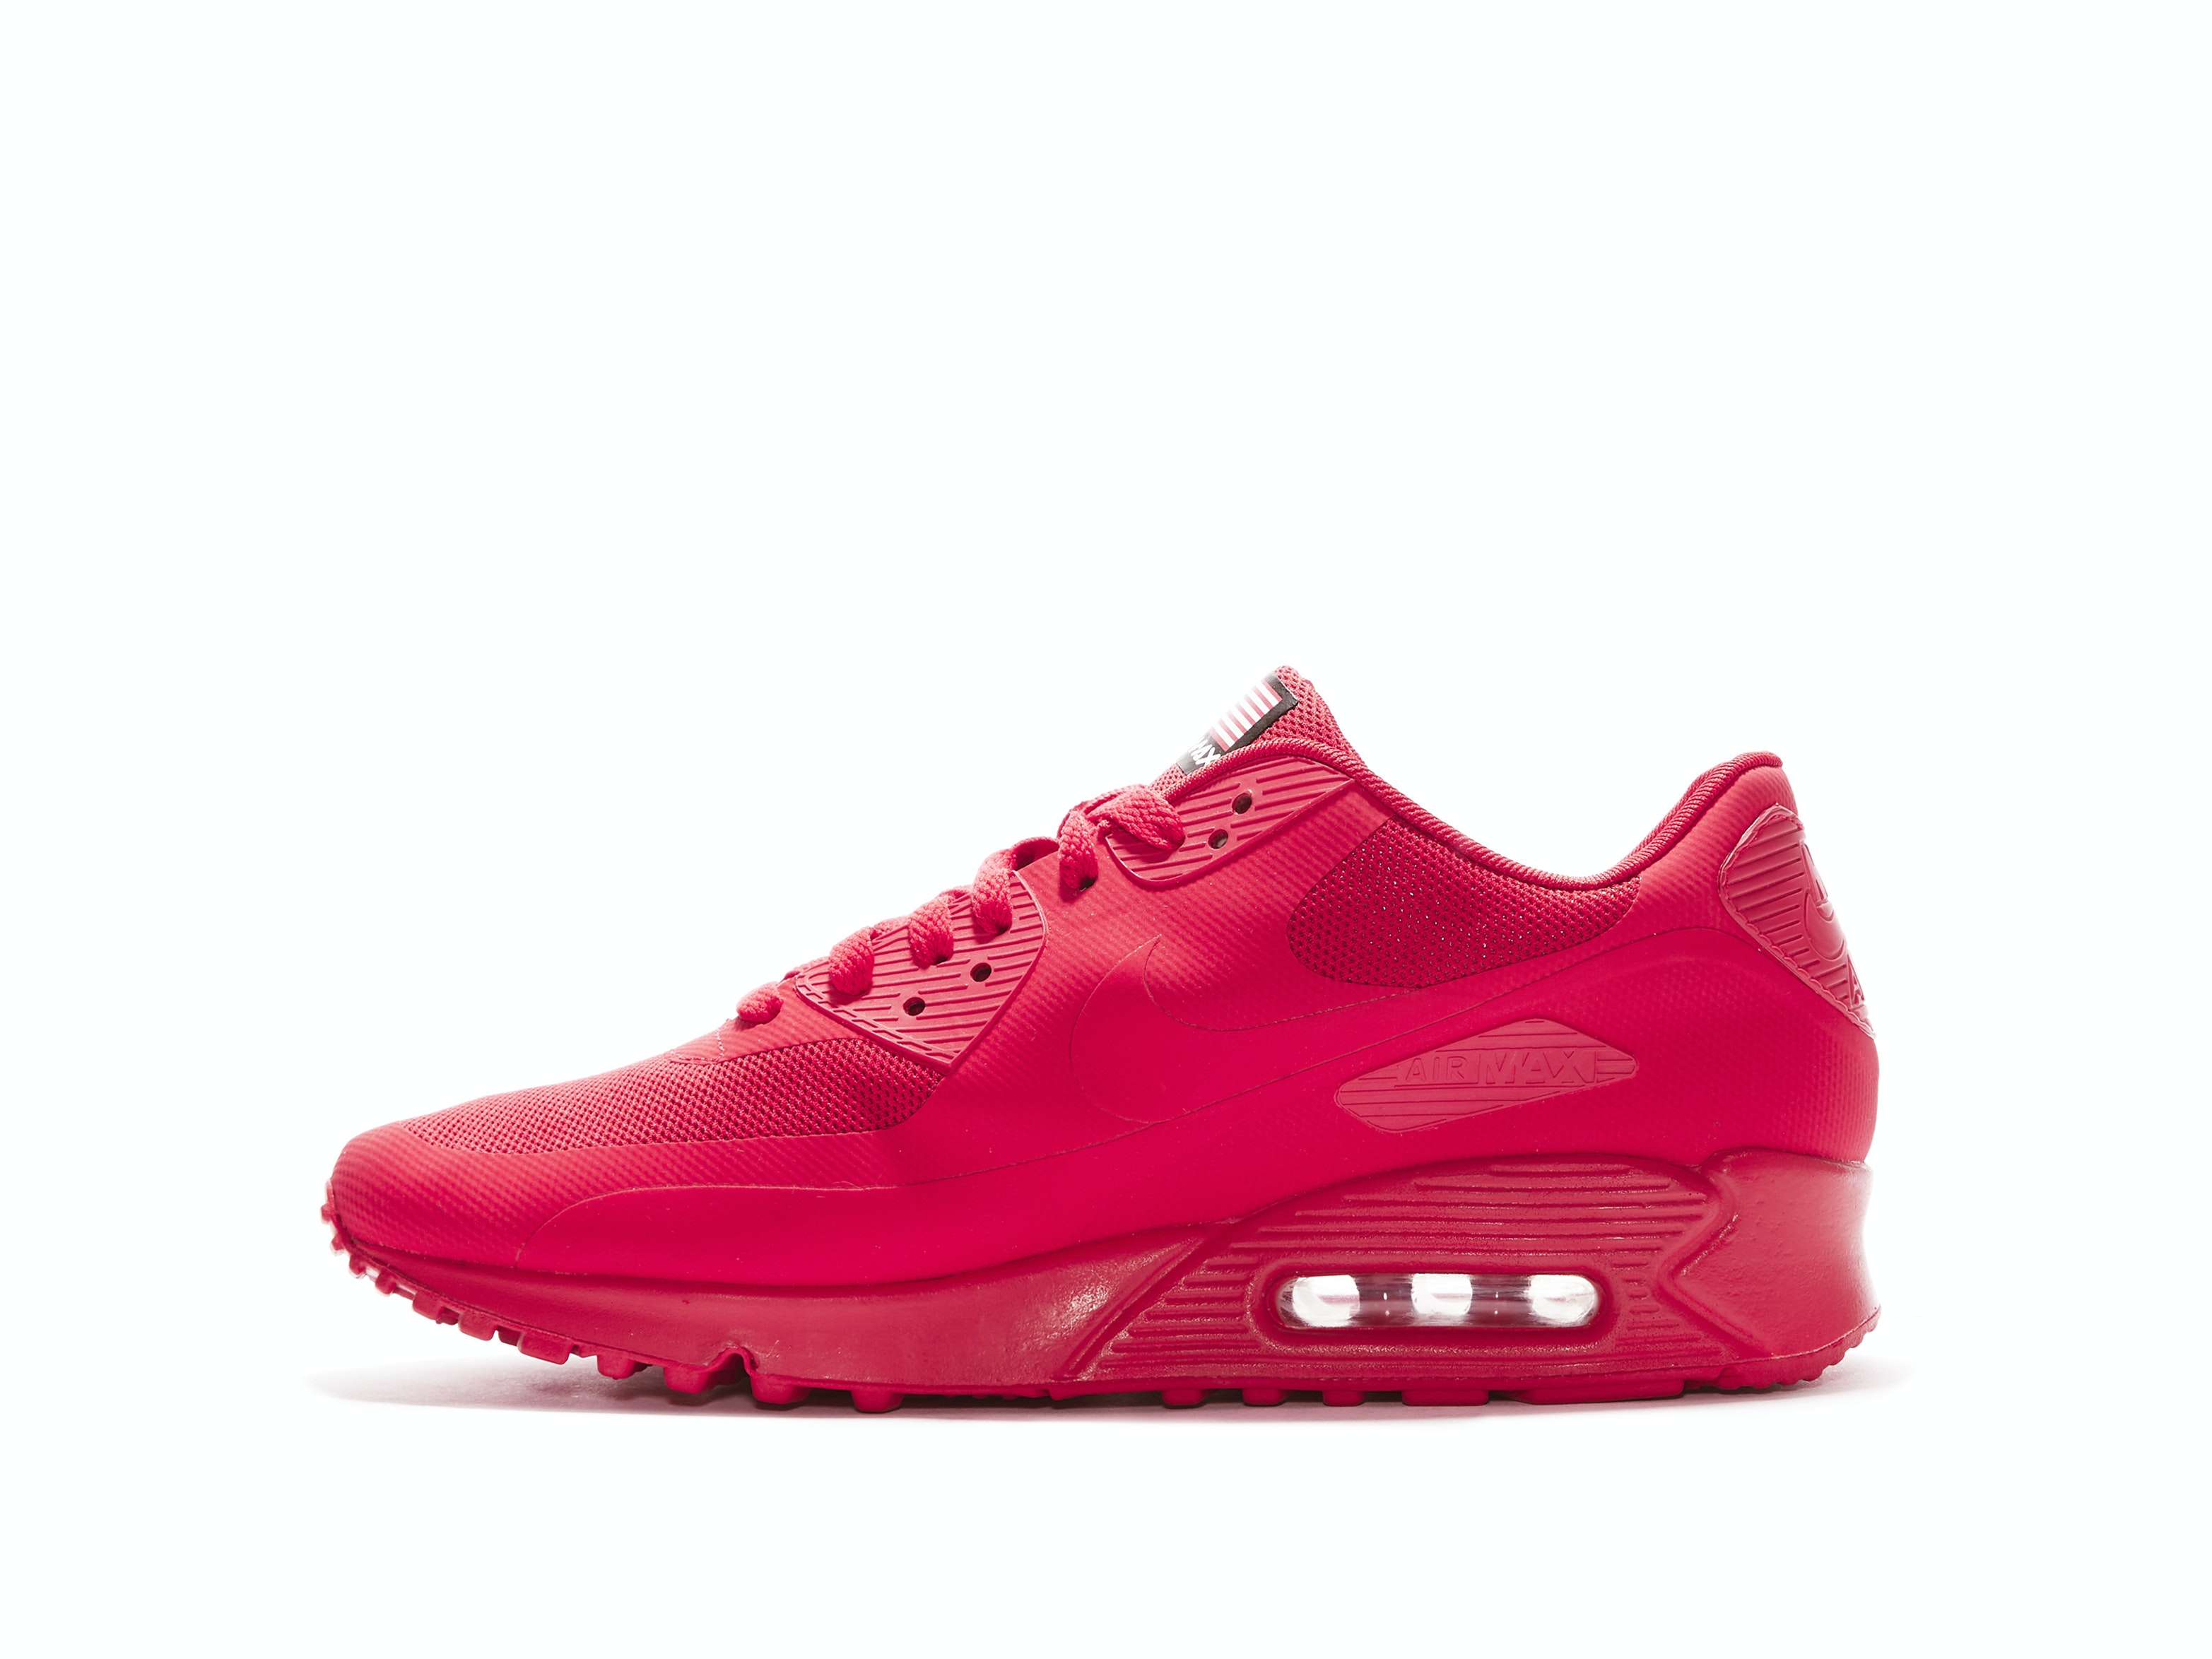 ca165c31 Air Max 90 Hyperfuse QS USA Red. 100% AuthenticSold out! Nike / 613841-660